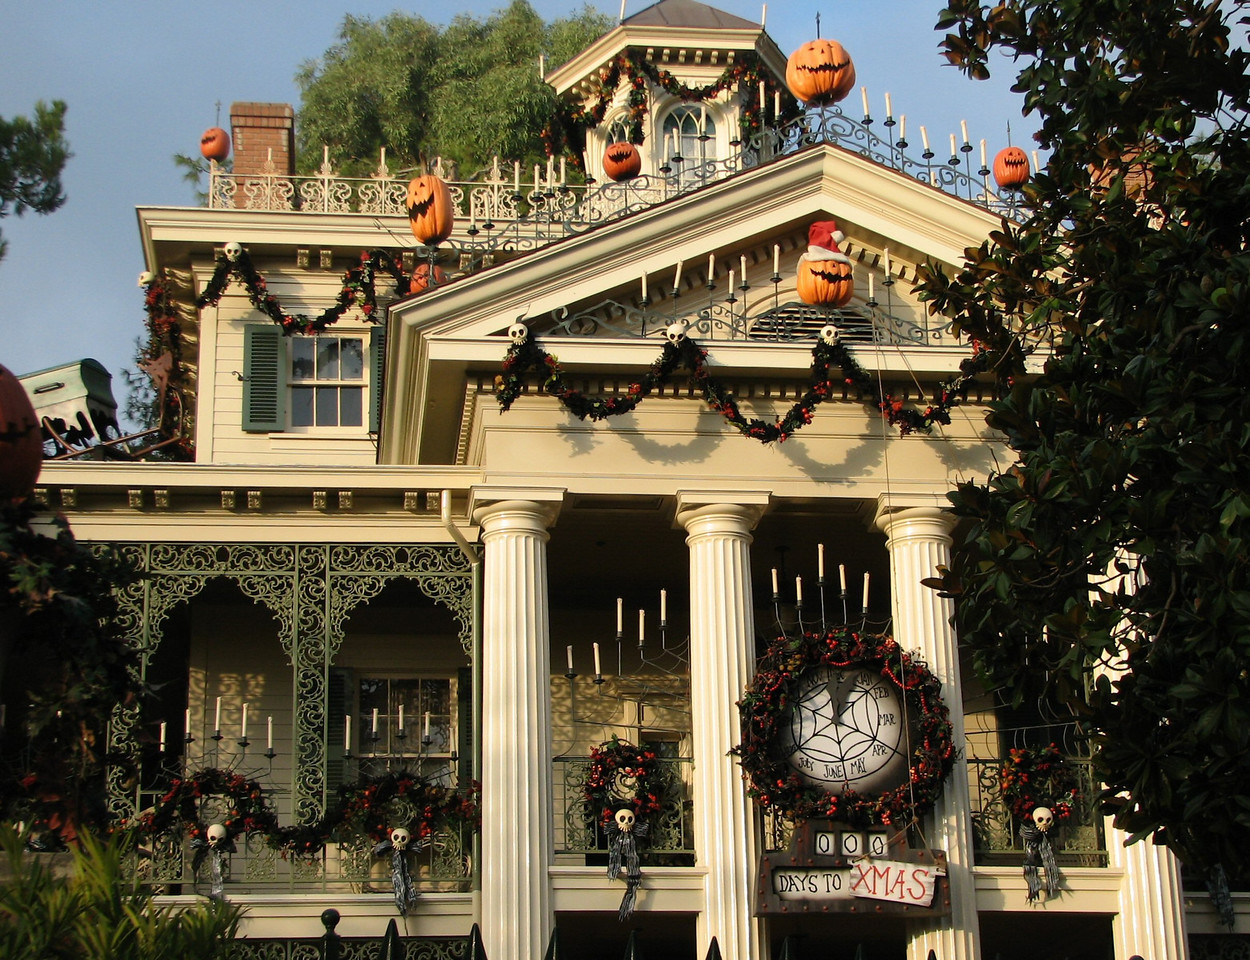 Haunted House decorated for Halloween.<br /> <br /> La Casa Encantada, decorada por el dia de las Brujas.